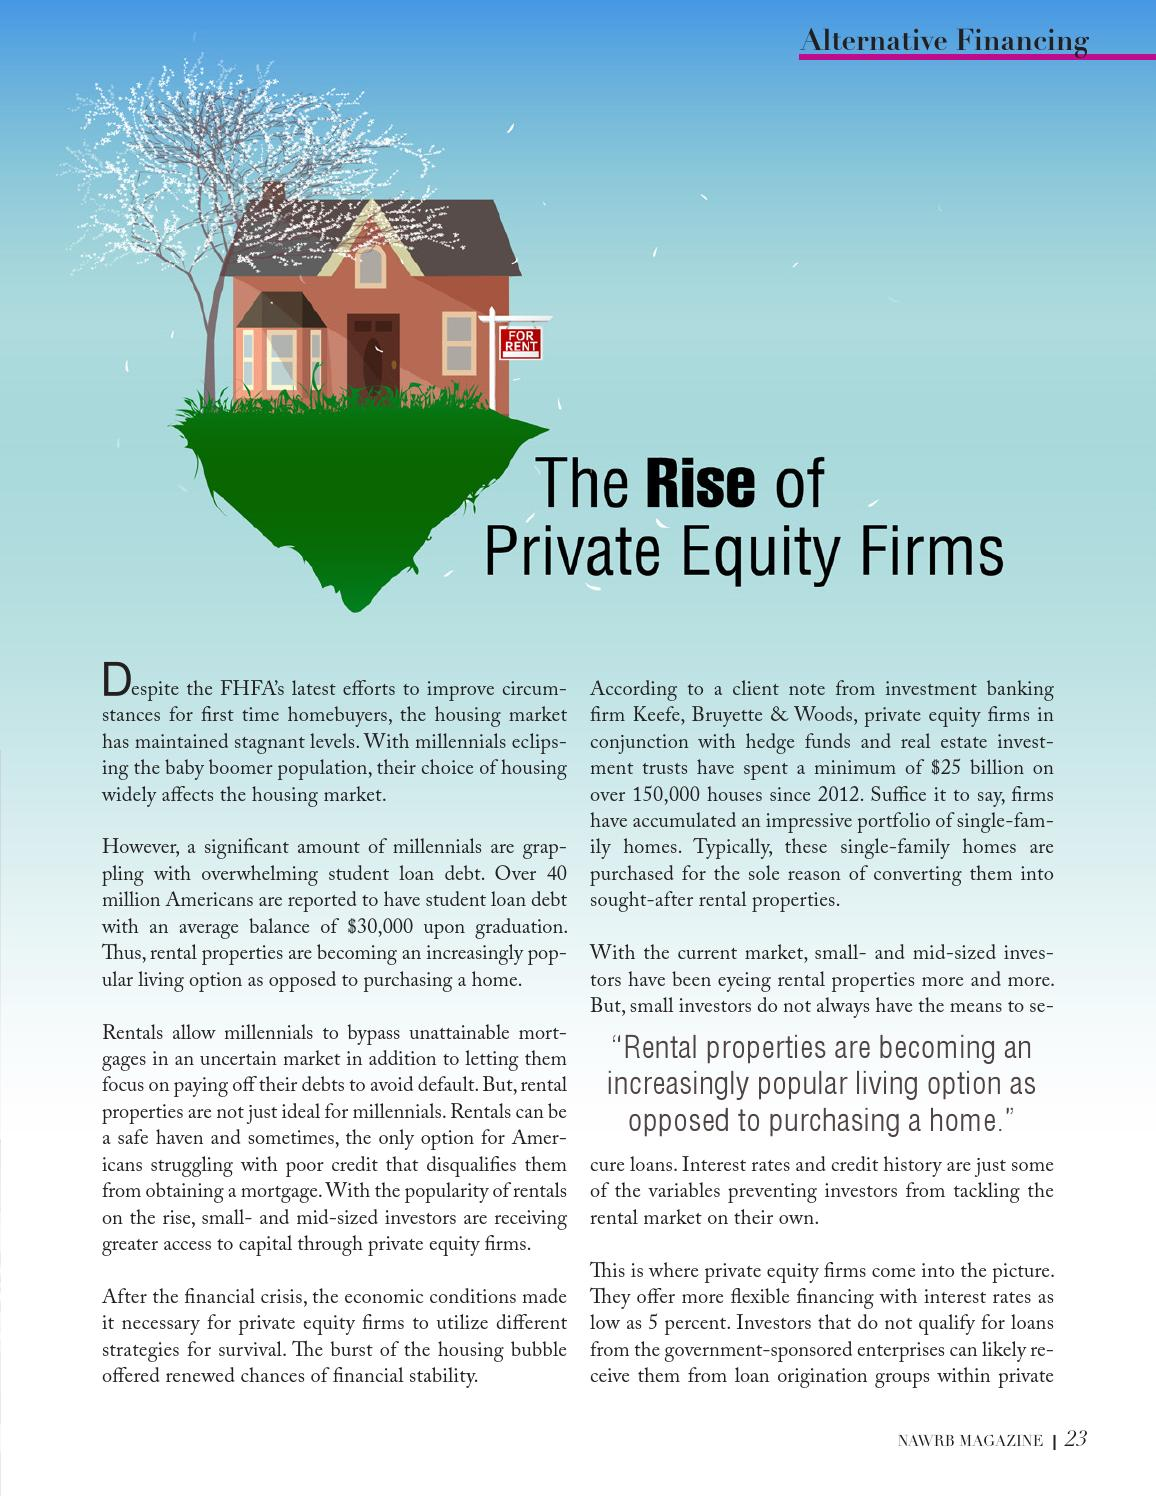 Vol 4, Issue 2 by Women in the Housing & Real Estate